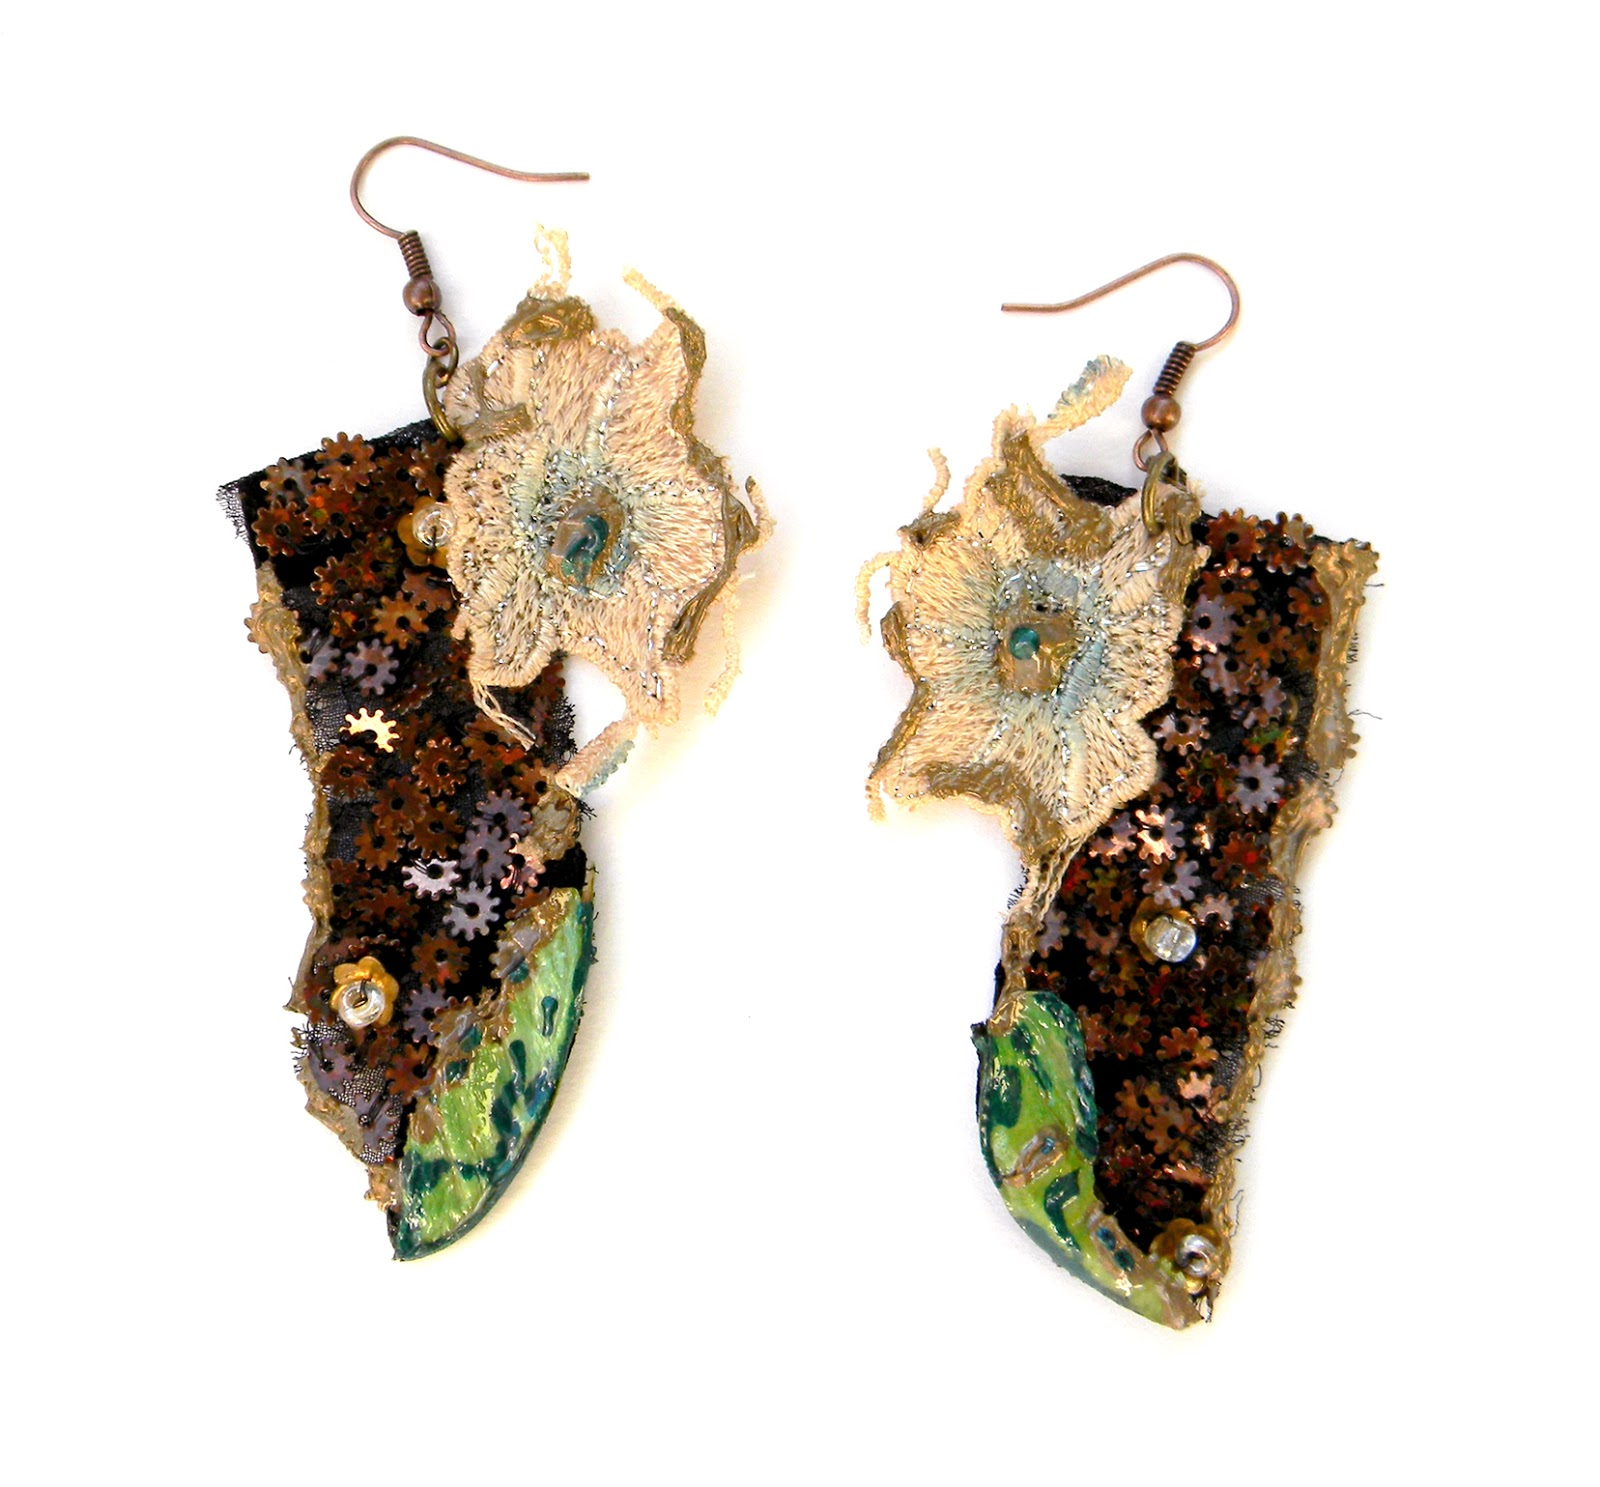 Handmade Earrings Steampunk Eco Chic Vintage Textile Jewelry